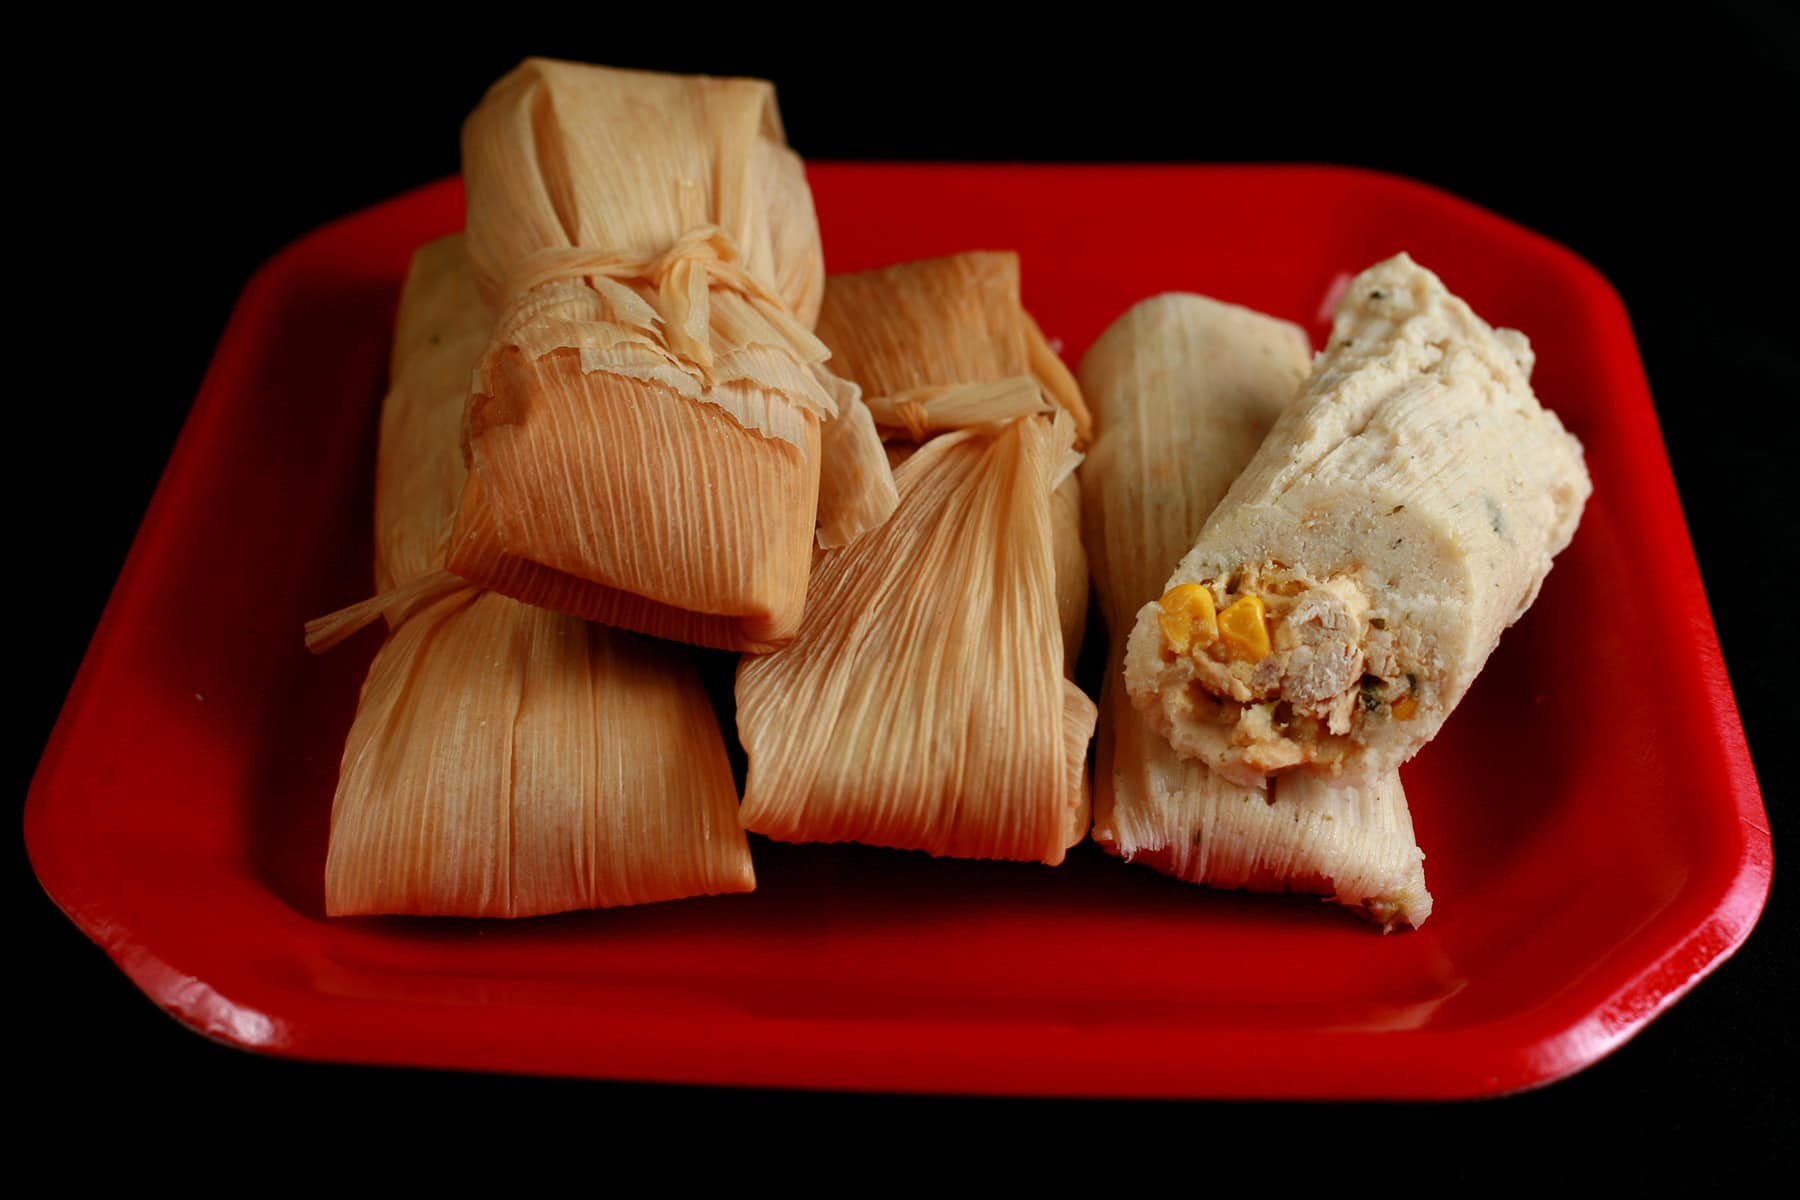 A small pile of salsa verde tamales on a red plate.